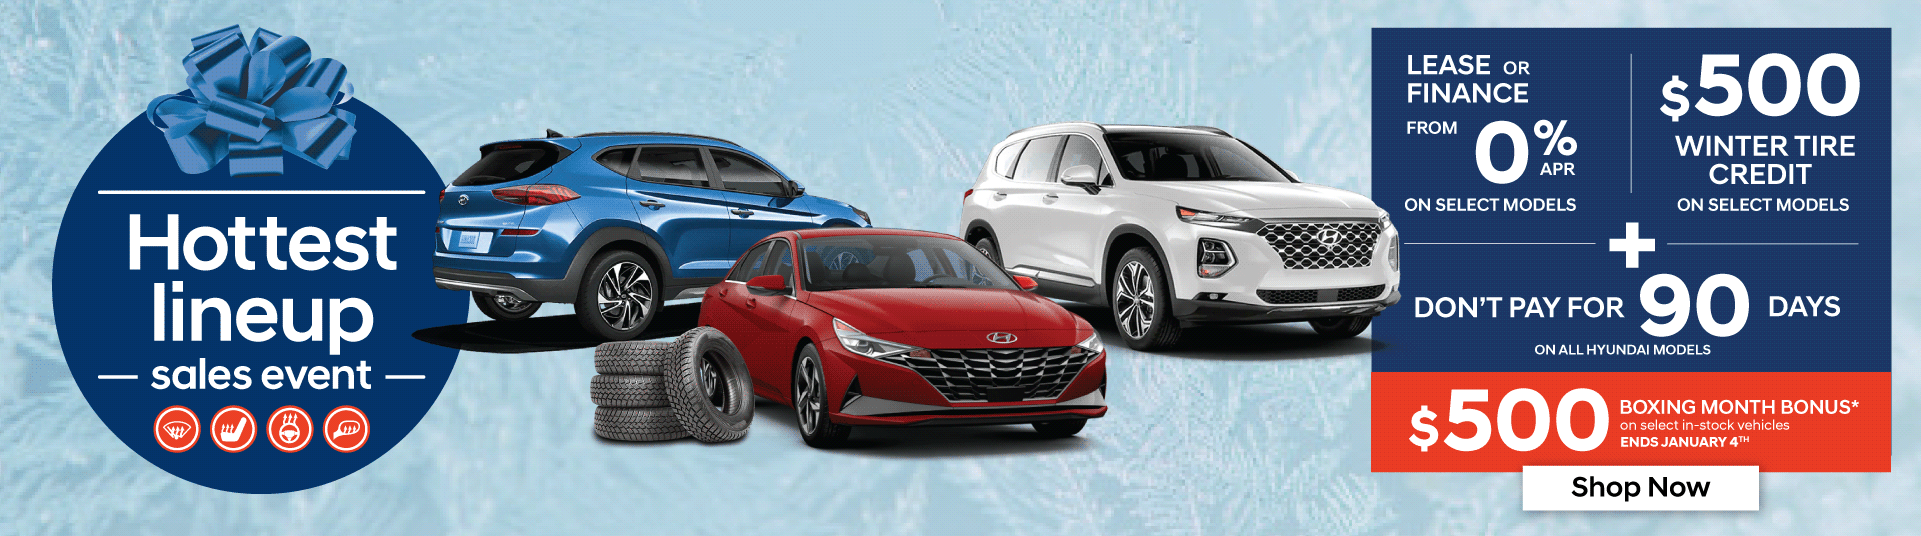 Hyundai Hottest Lineup Sales Event in Woodstock